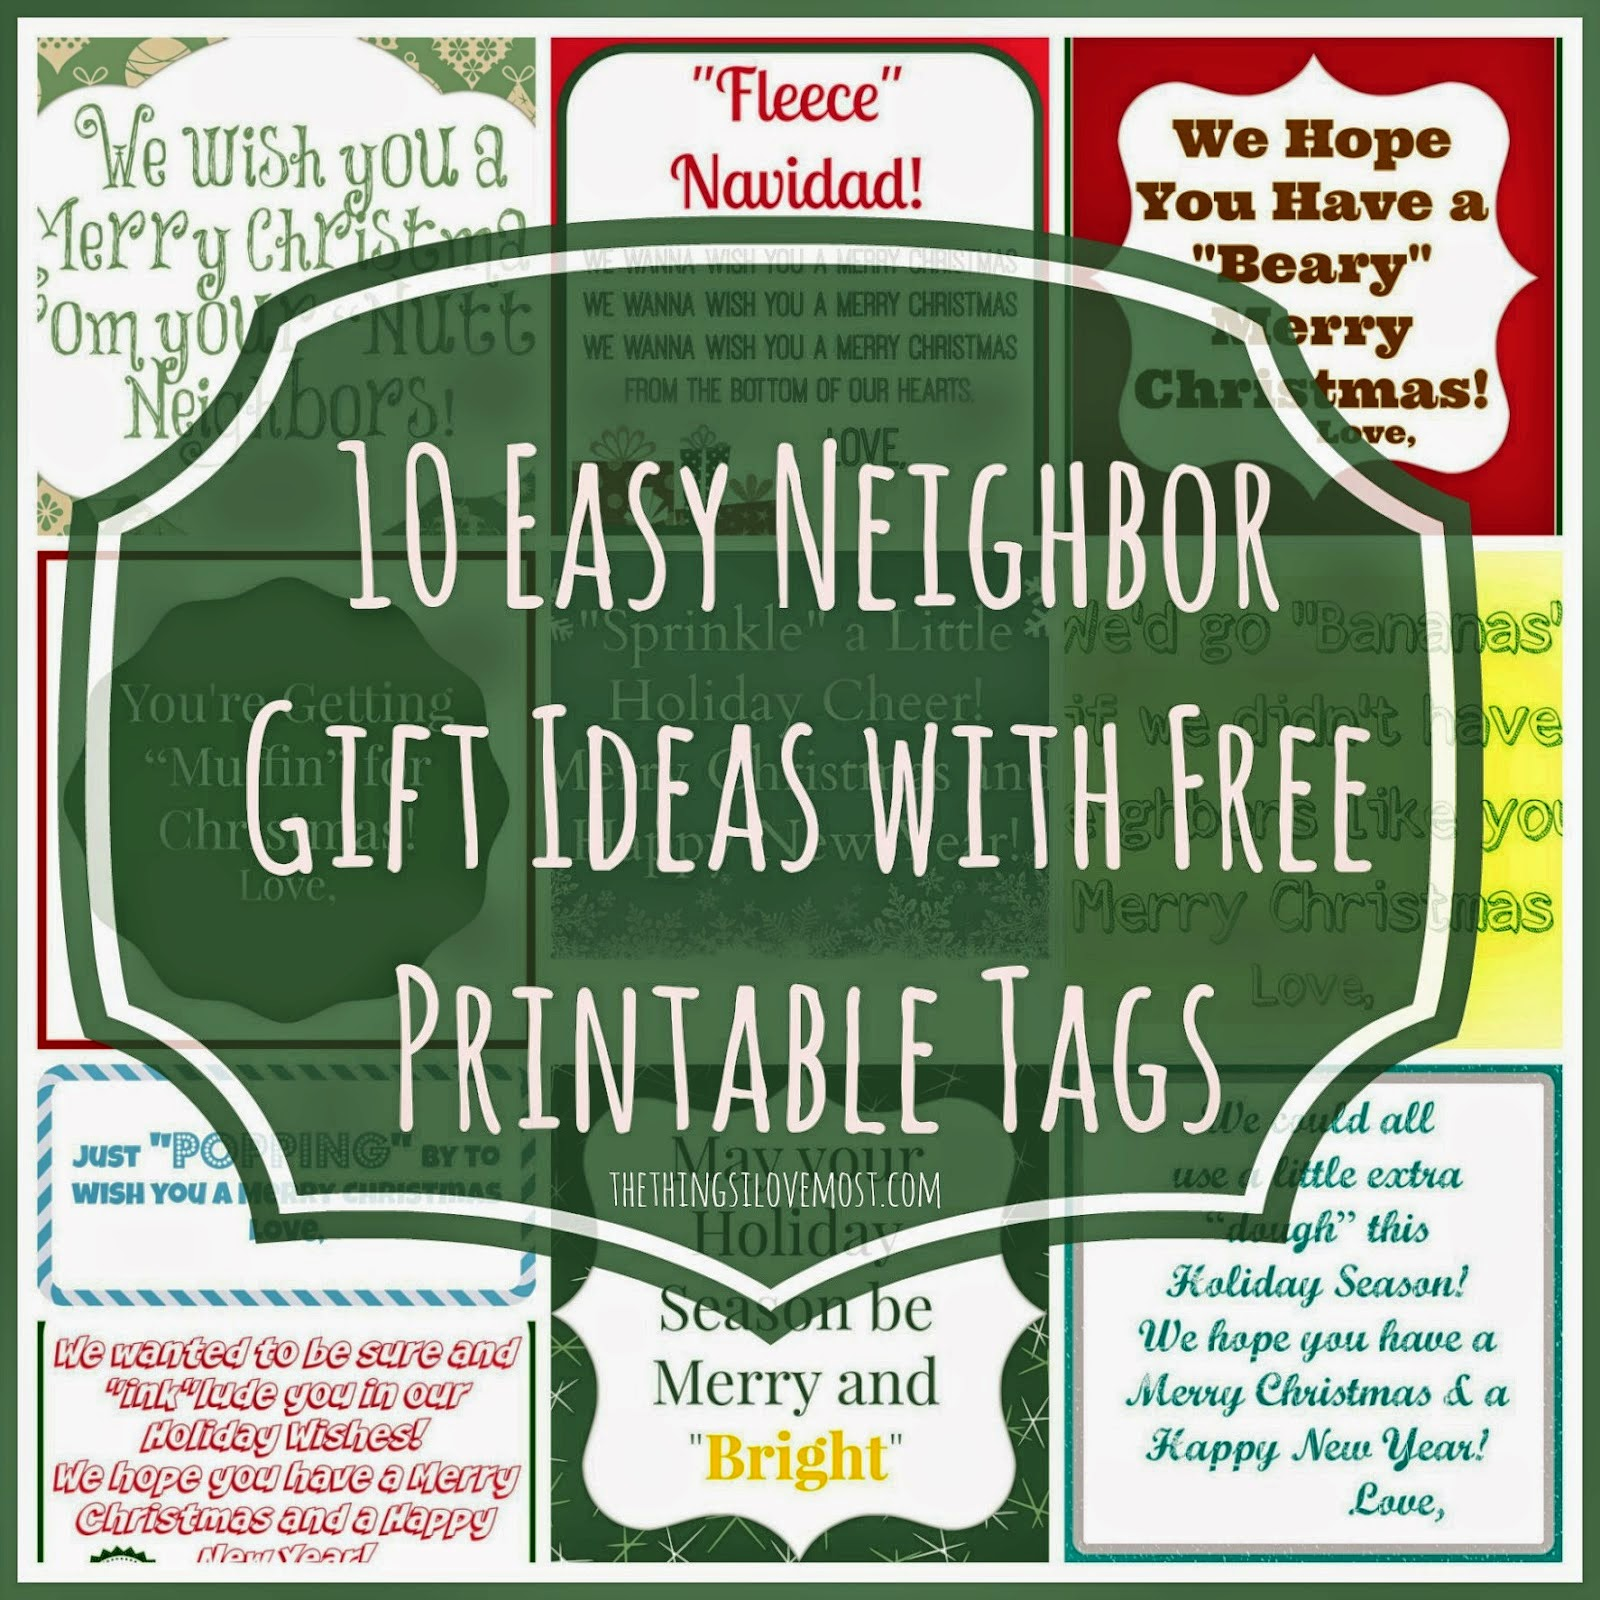 Don't have any cheap and amazing gift ideas for your neighbors and friends this year? Here are ten great neighbor gift ideas with free printable tags to jazz up cheap gifts and make them wonderful.  This is day 9 of our Blogger Online Advent project.